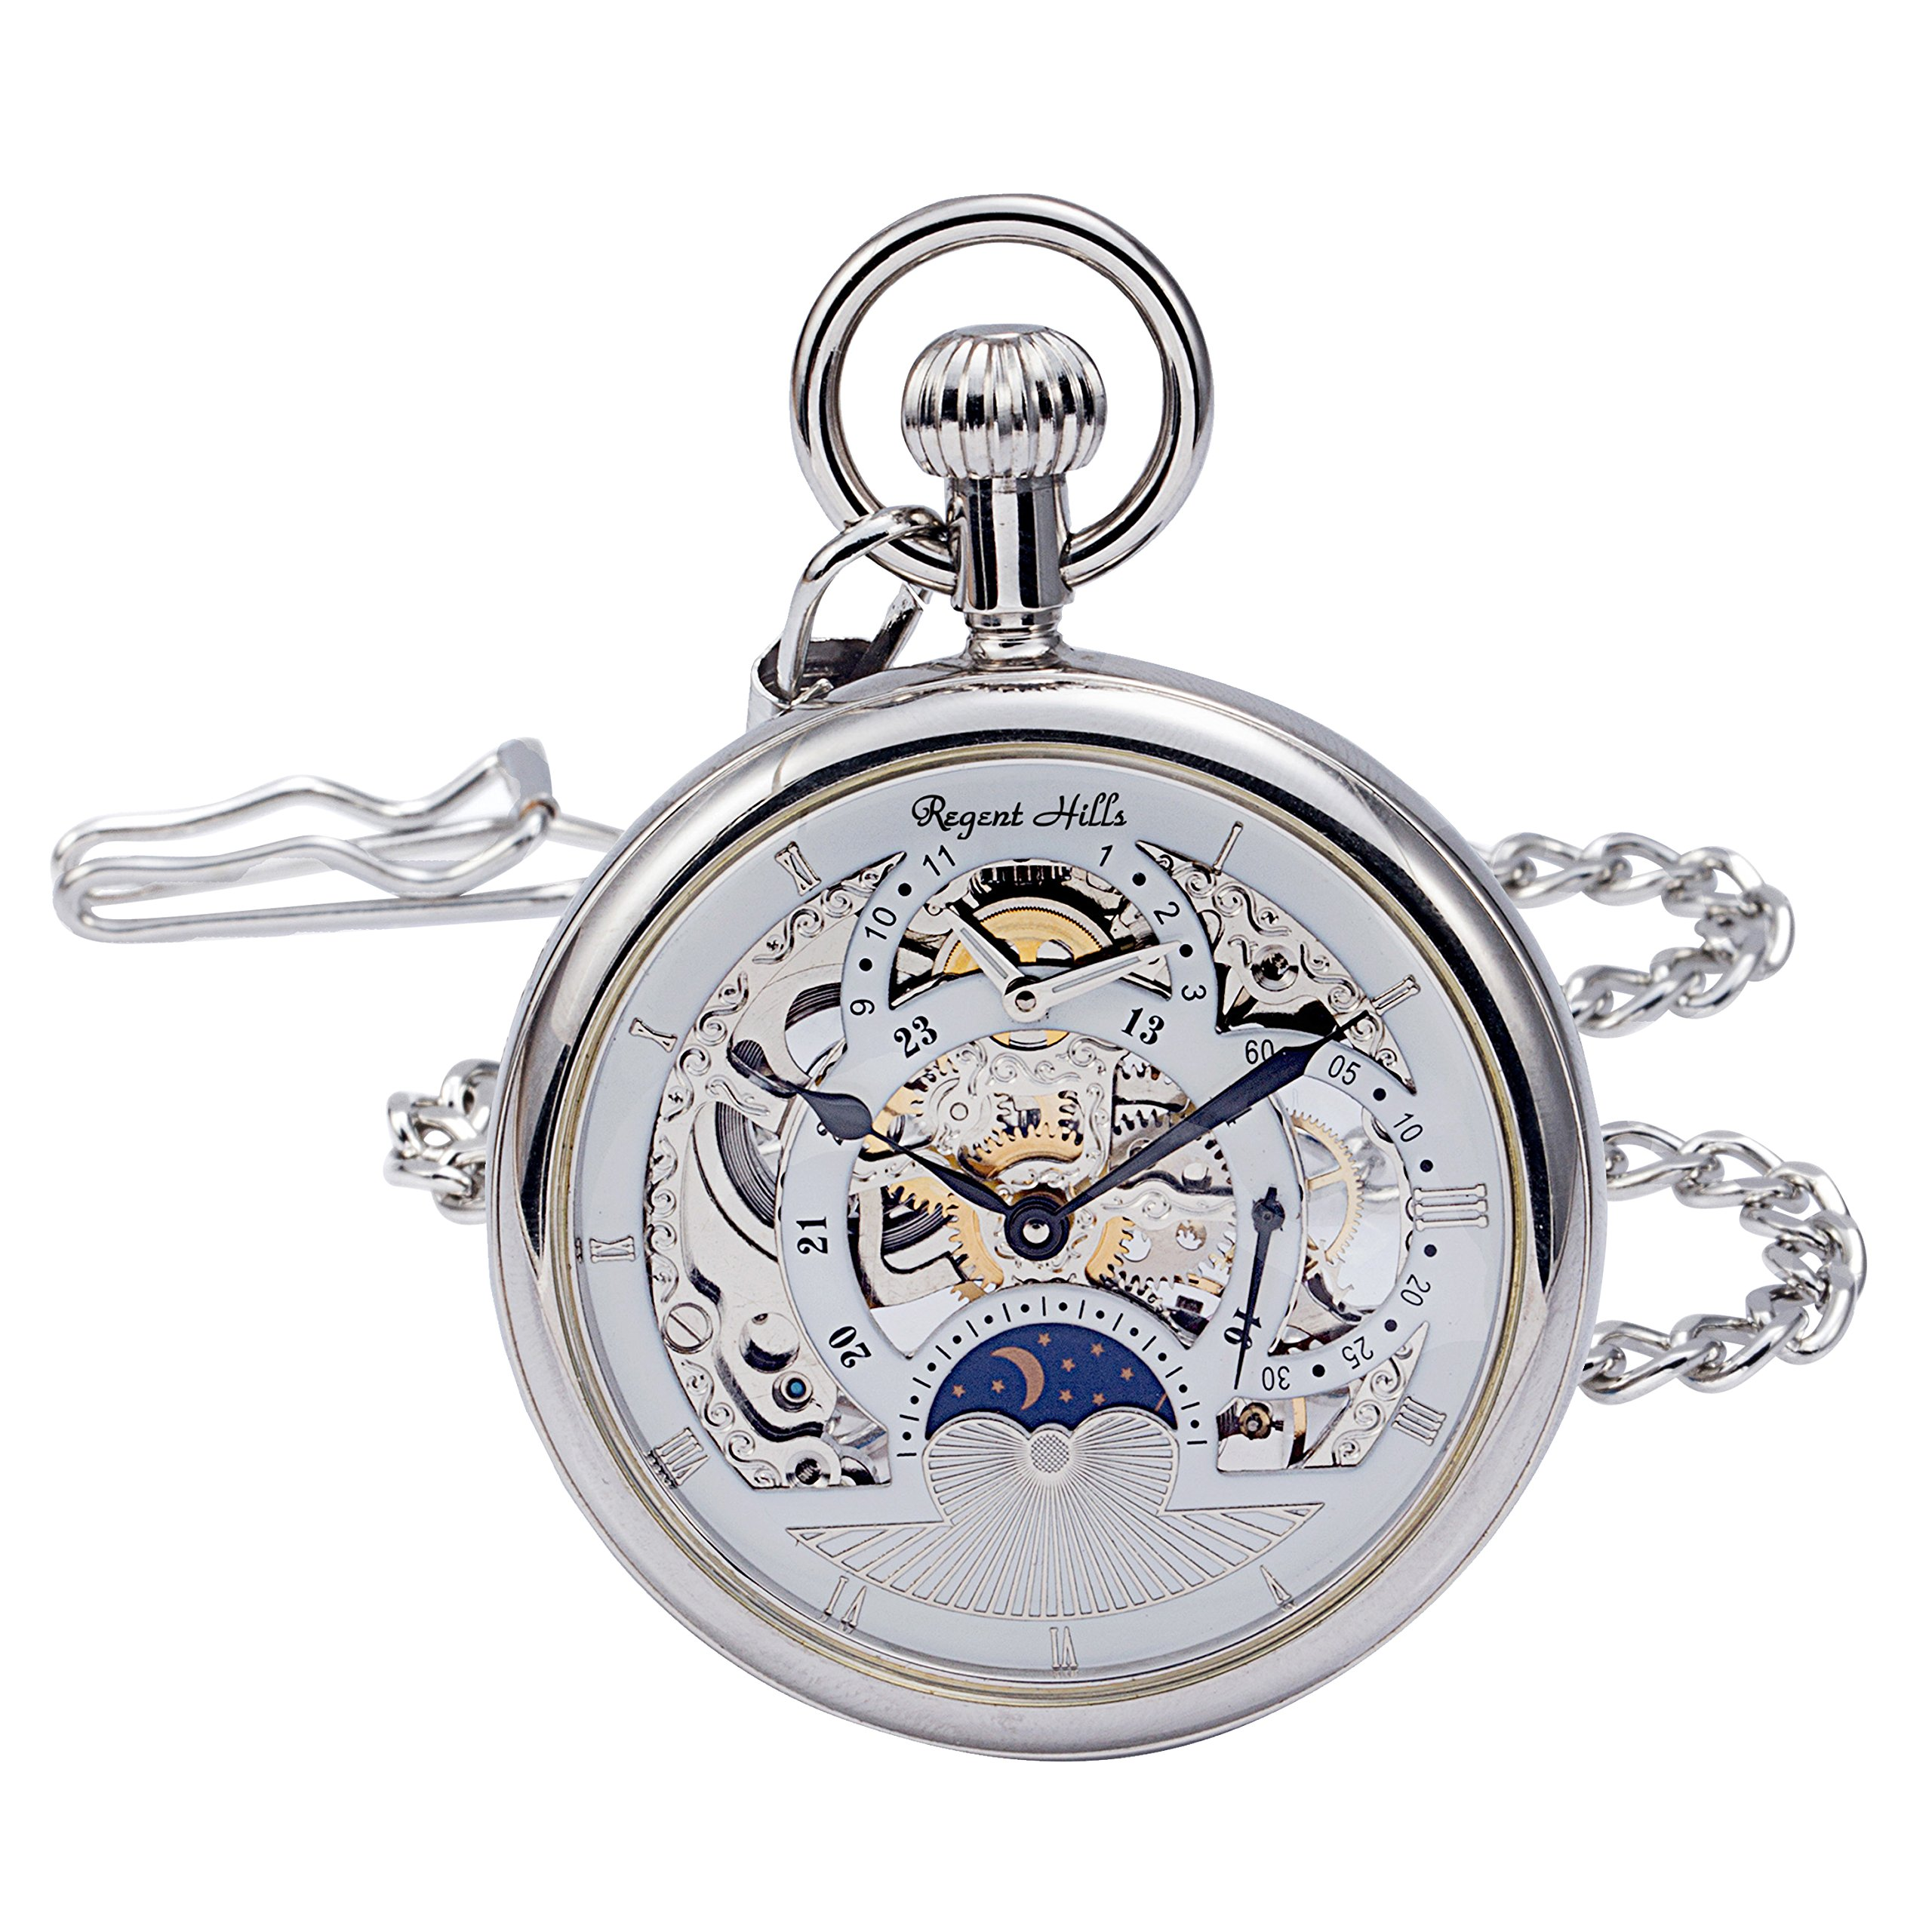 Regent Hills Vintage Silver Open Face Brass Case Skeleton Pocket Watch with Chain 9441CP-IWW22 by Regent Hills